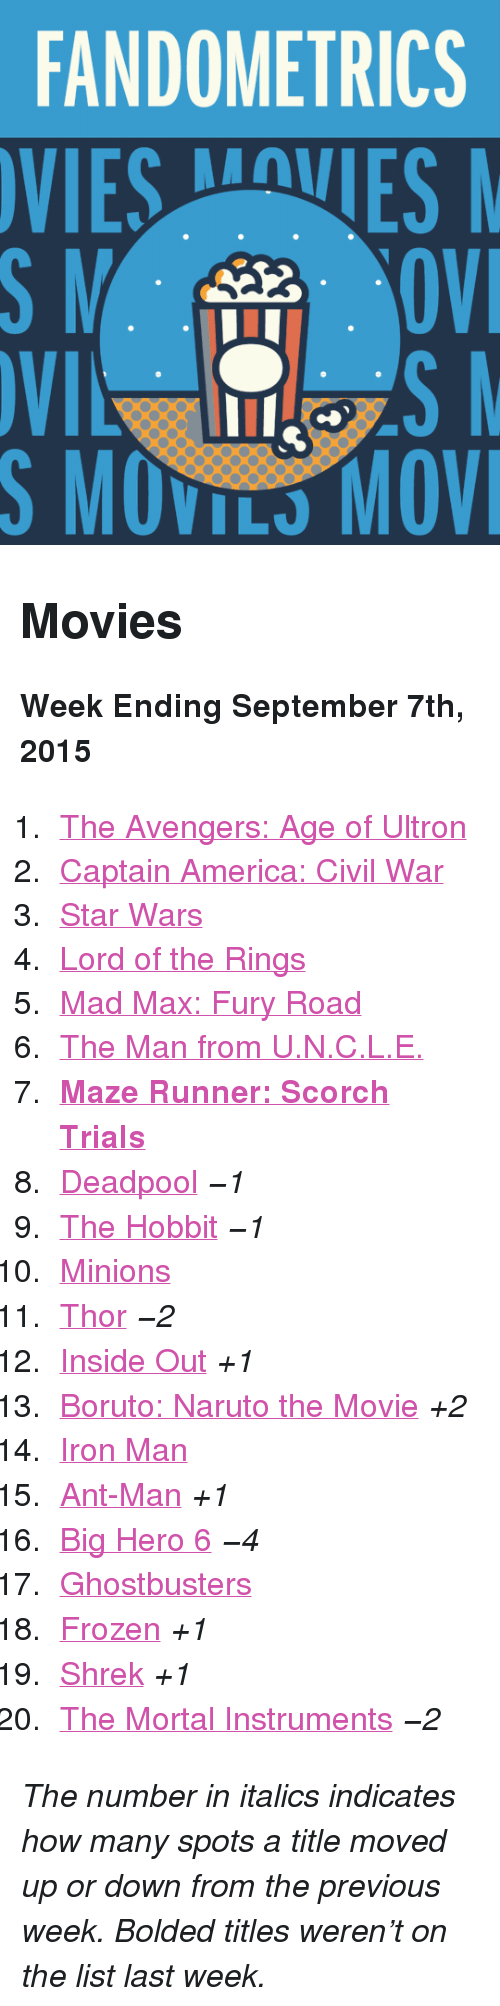 "ant man: FANDOMETRICS  VIESVES  S MOVILS MOV <h2>Movies</h2><p><b>Week Ending September 7th, 2015</b></p><ol><li><a href=""http://www.tumblr.com/search/age%20of%20ultron"">The Avengers: Age of Ultron</a></li>  <li><a href=""http://www.tumblr.com/search/captain%20america%20civil%20war"">Captain America: Civil War</a></li>  <li><a href=""http://www.tumblr.com/search/star%20wars"">Star Wars</a></li>  <li><a href=""http://www.tumblr.com/search/lotr"">Lord of the Rings</a></li>  <li><a href=""http://www.tumblr.com/search/mad%20max"">Mad Max: Fury Road</a></li>  <li><a href=""http://www.tumblr.com/search/the%20man%20from%20uncle"">The Man from U.N.C.L.E.</a></li>  <li><a href=""http://www.tumblr.com/search/the%20scorch%20trials""><b>Maze Runner: Scorch Trials</b></a></li>  <li><a href=""http://www.tumblr.com/search/deadpool"">Deadpool</a> <i>−1</i></li>  <li><a href=""http://www.tumblr.com/search/the%20hobbit"">The Hobbit</a> <i>−1</i></li>  <li><a href=""http://www.tumblr.com/search/minions"">Minions</a></li>  <li><a href=""http://www.tumblr.com/search/thor"">Thor</a> <i>−2</i></li>  <li><a href=""http://www.tumblr.com/search/inside%20out"">Inside Out</a> <i>+1</i></li>  <li><a href=""http://www.tumblr.com/search/boruto%20the%20movie"">Boruto: Naruto the Movie</a> <i>+2</i></li>  <li><a href=""http://www.tumblr.com/search/iron%20man"">Iron Man</a></li>  <li><a href=""http://www.tumblr.com/search/ant%20man"">Ant-Man</a> <i>+1</i></li>  <li><a href=""http://www.tumblr.com/search/big%20hero%206"">Big Hero 6</a> <i>−4</i></li>  <li><a href=""http://www.tumblr.com/search/ghostbusters"">Ghostbusters</a></li>  <li><a href=""http://www.tumblr.com/search/frozen"">Frozen</a> <i>+1</i></li>  <li><a href=""http://www.tumblr.com/search/shrek"">Shrek</a> <i>+1</i></li>  <li><a href=""http://www.tumblr.com/search/the%20mortal%20instruments"">The Mortal Instruments</a> <i>−2</i></li></ol><p><i>The number in italics indicates how many spots a title moved up or down from the previous week. Bolded titles weren't on the list last week.</i></p>"